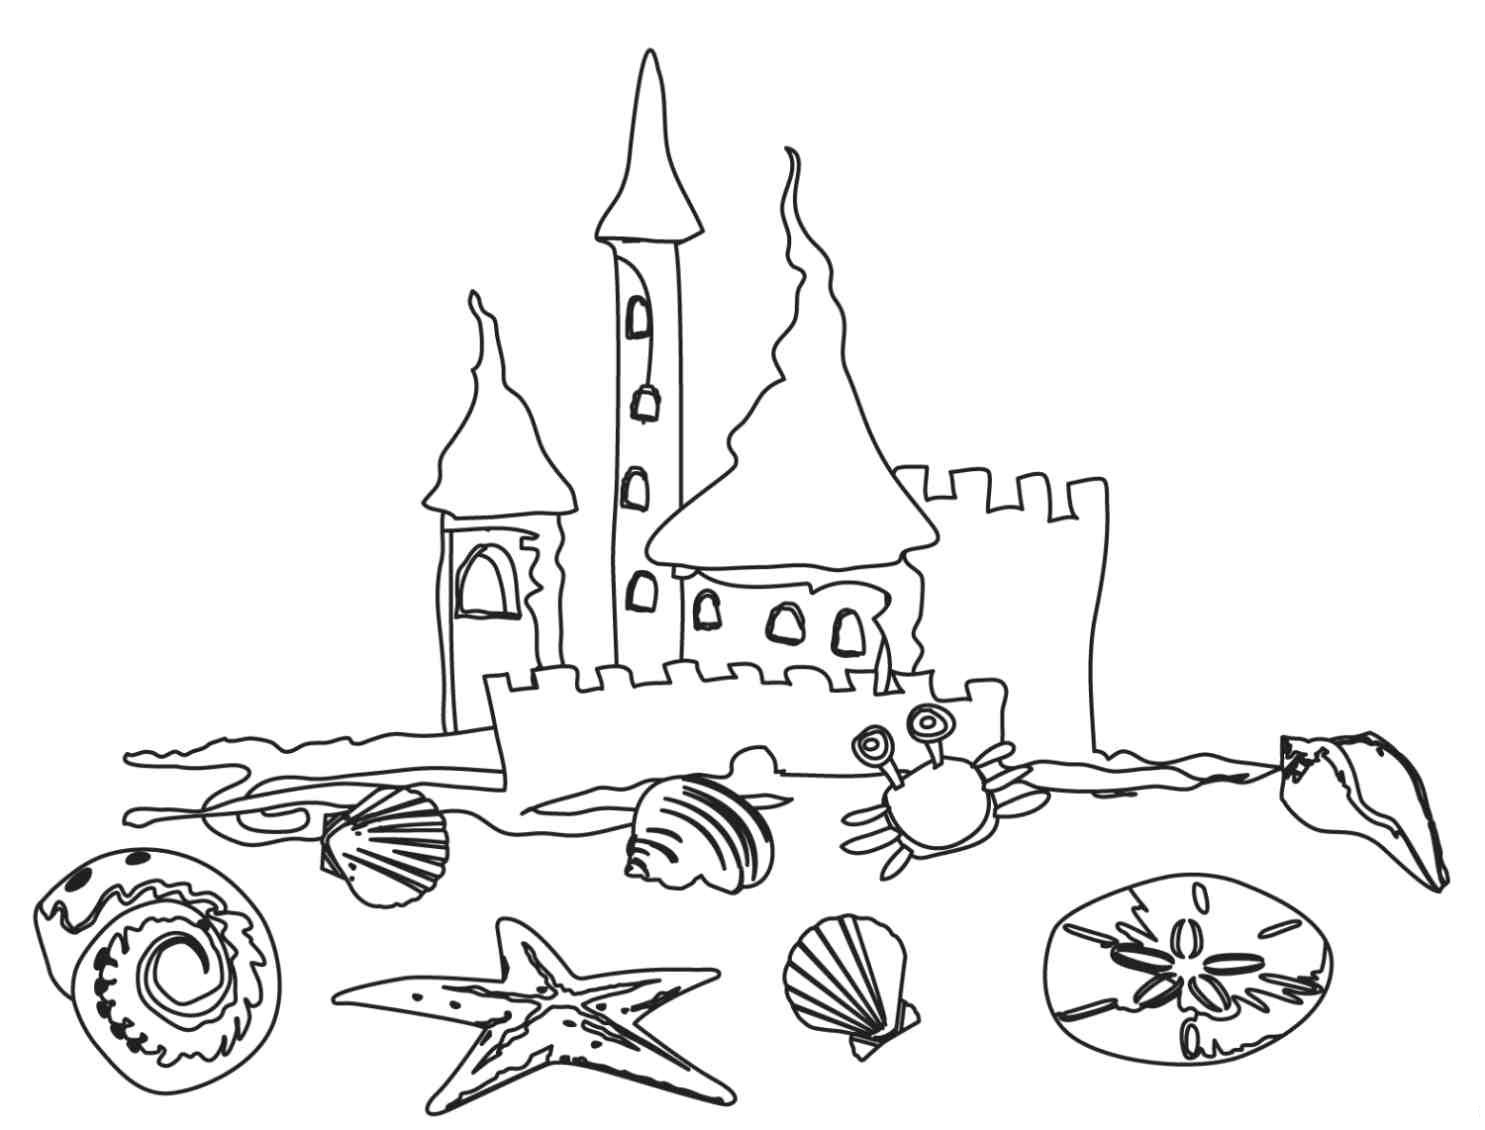 coloring beach scene beach coloring pages downloadable full documents k5 beach coloring scene